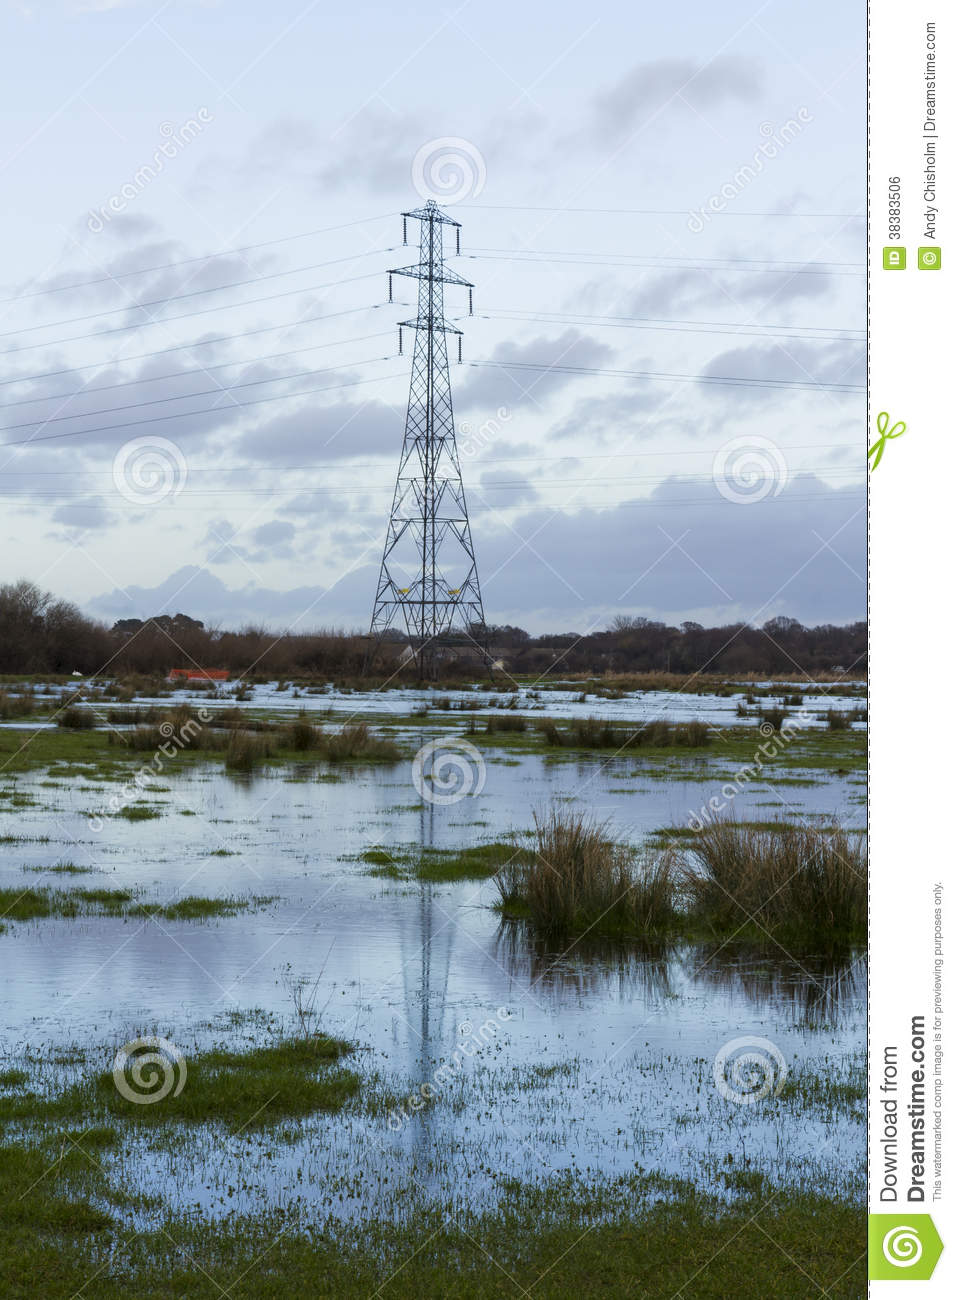 Electricity Pylon with reflection